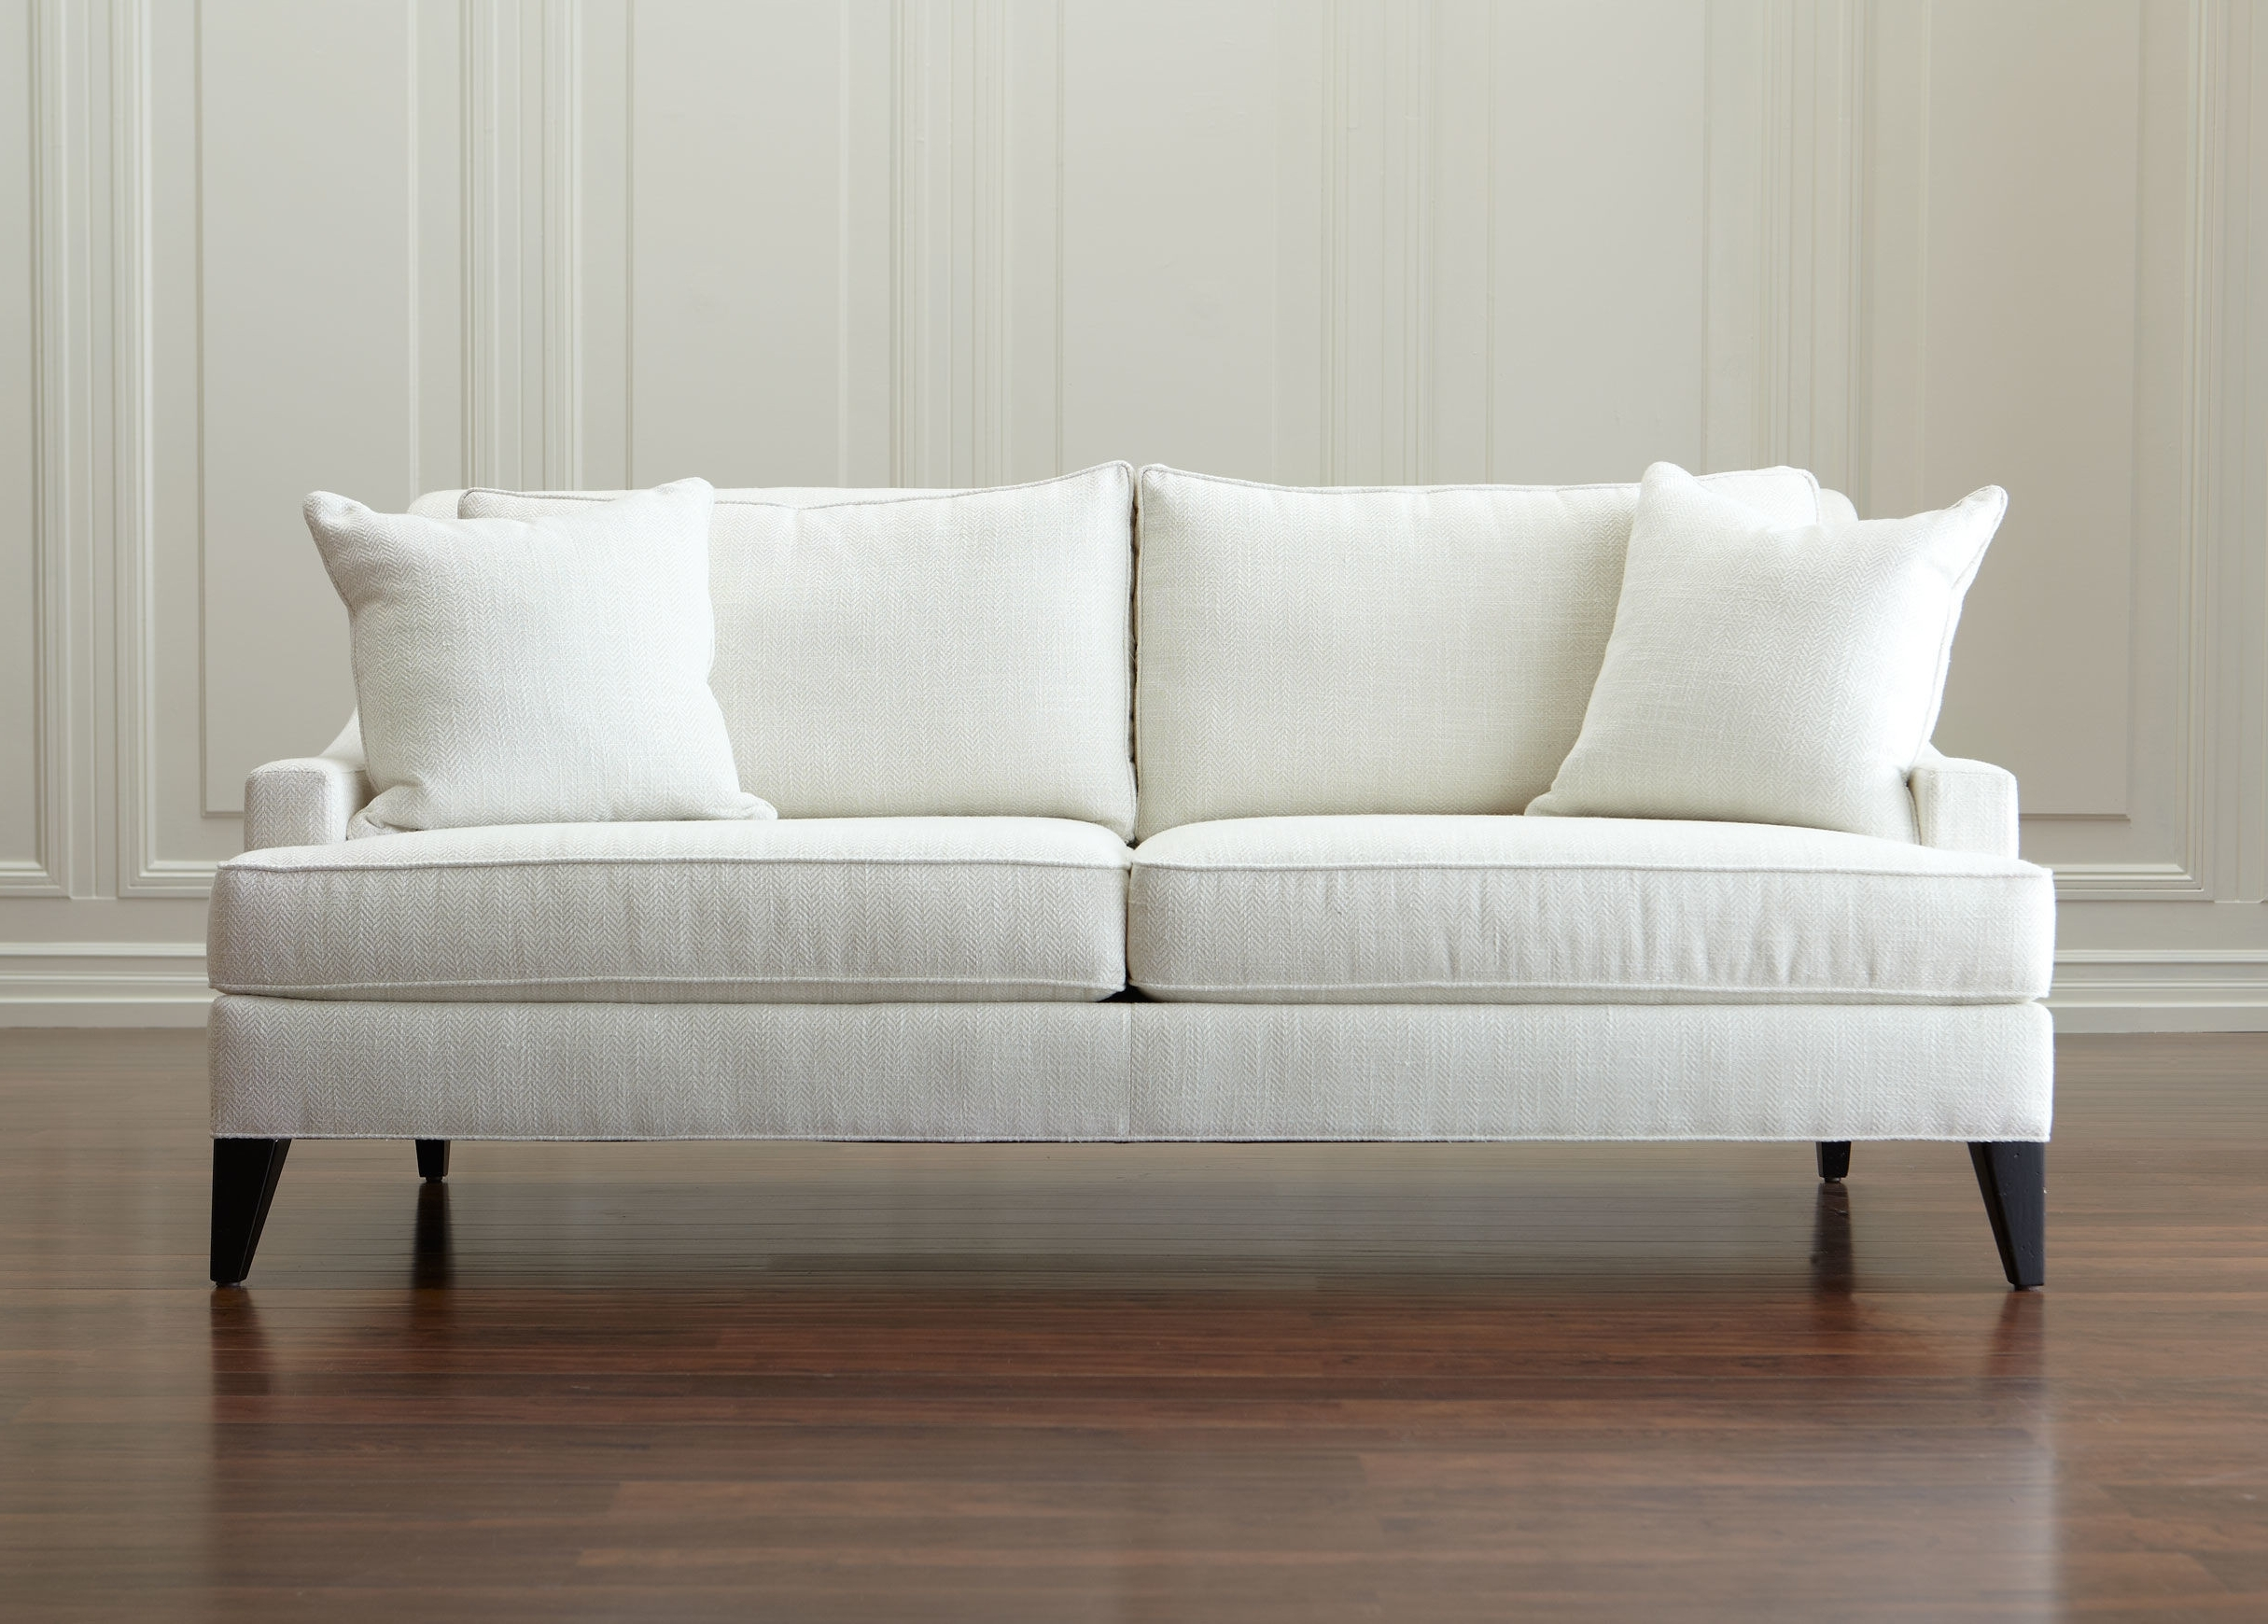 Well Known Down Filled Sofas Throughout Furniture : Ethan Allen Down Filled Sofa Luxury Best Ethan Allen (View 17 of 20)